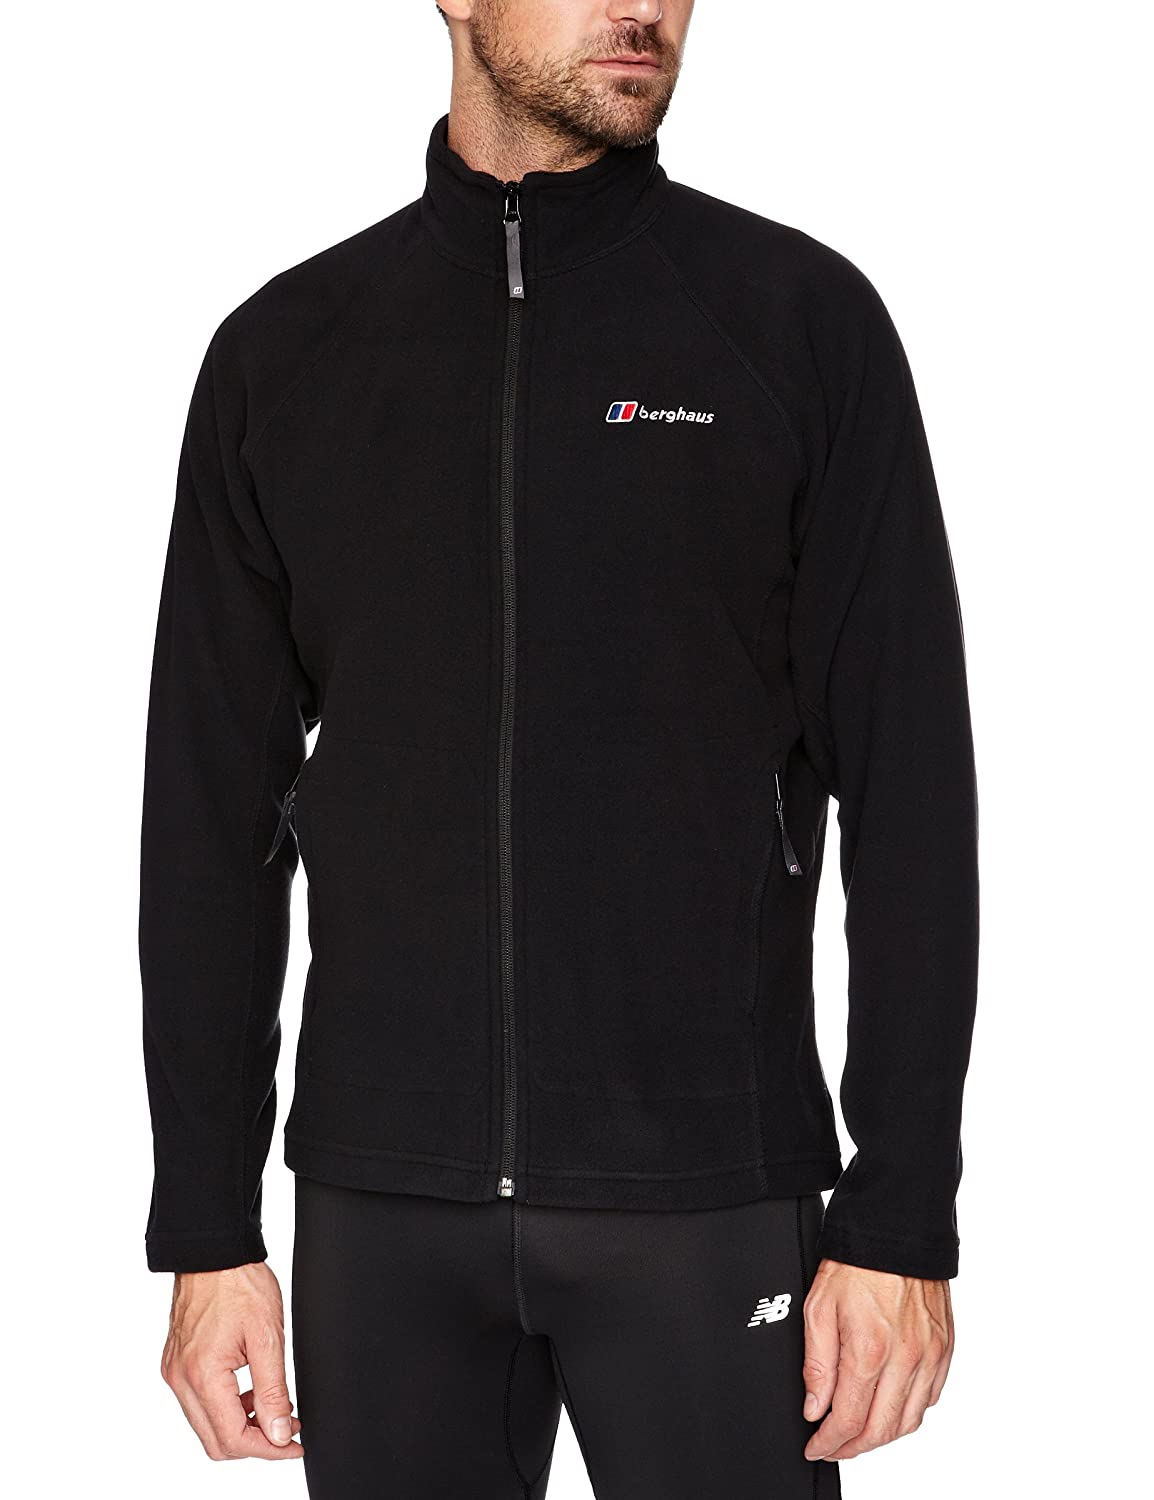 Product Features This midweight fleece with high collar, full-zip front, and side seam.